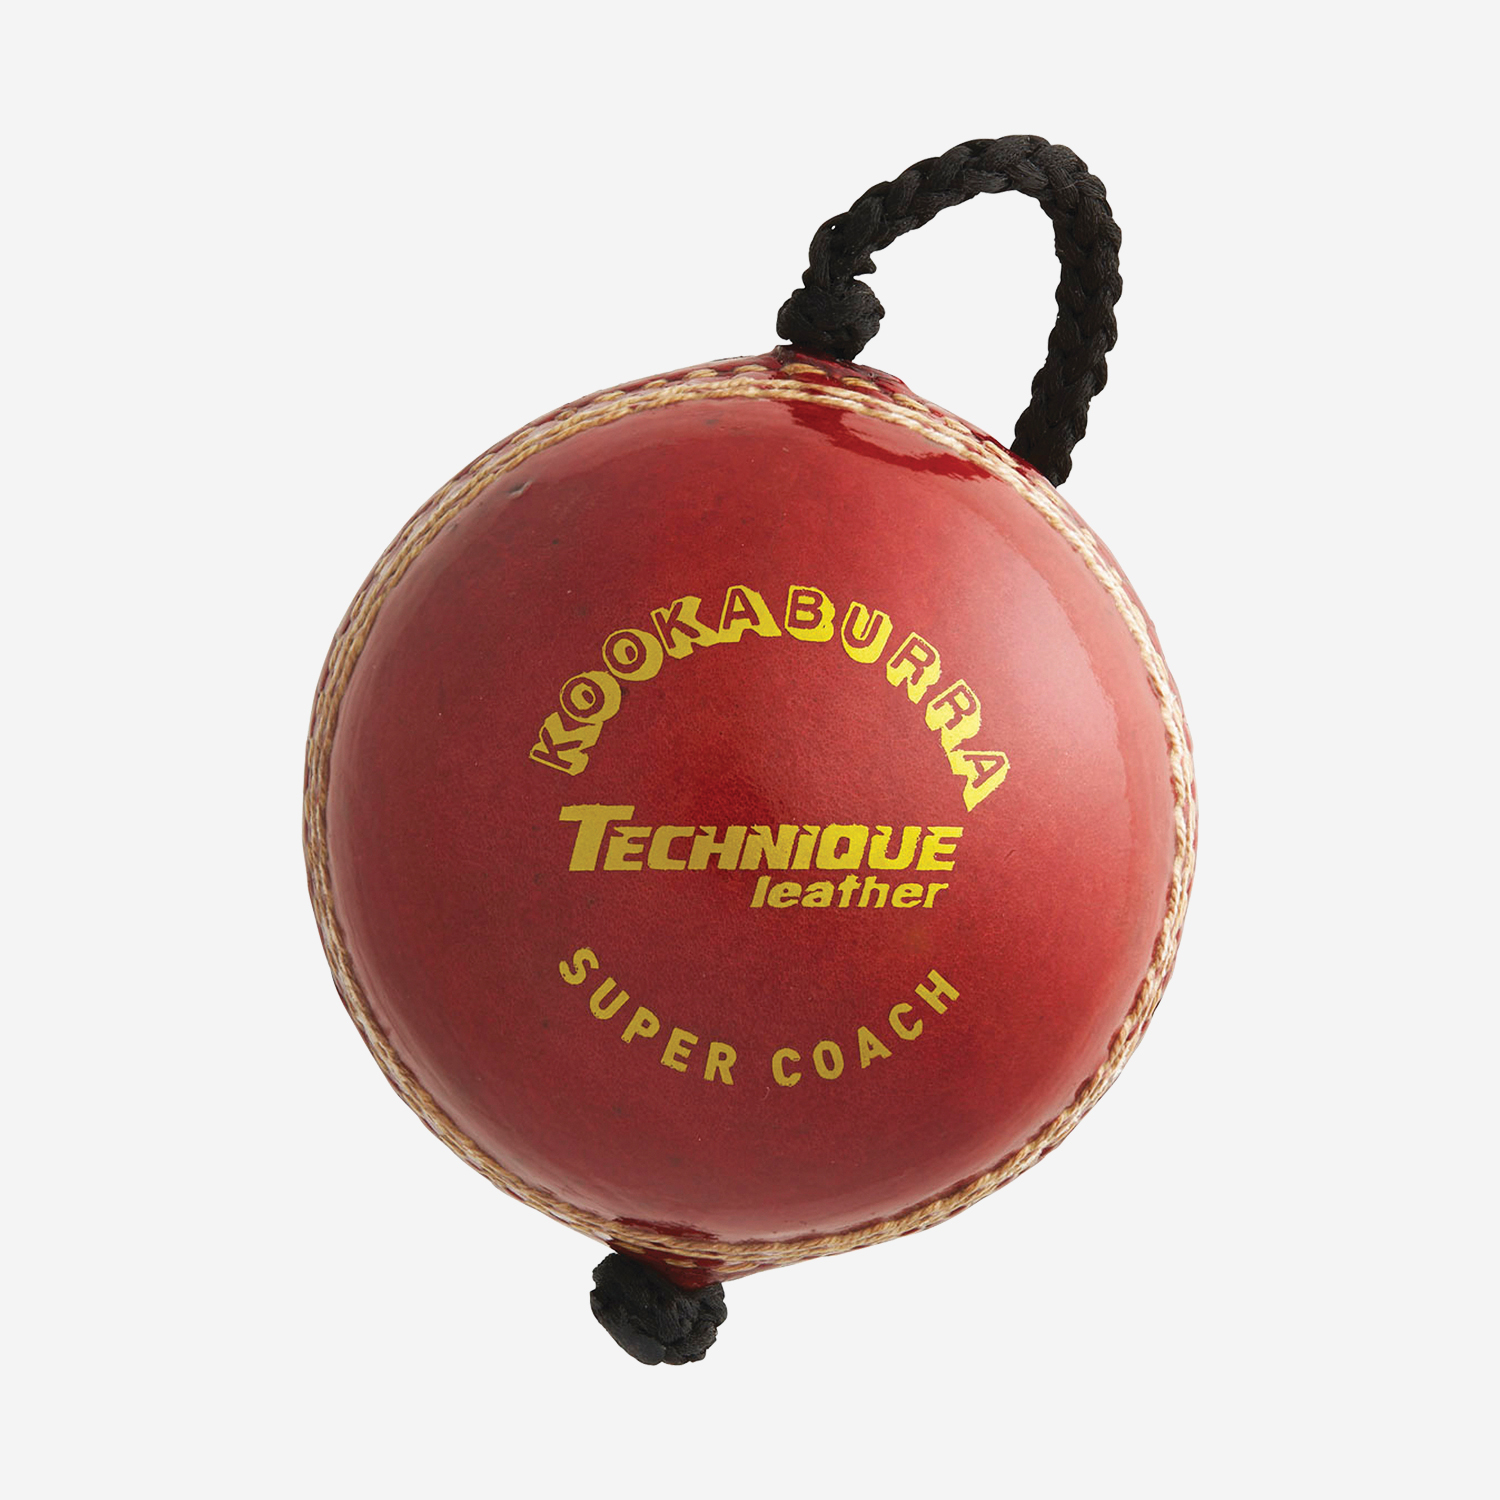 Super Coach Technique Leather Ball